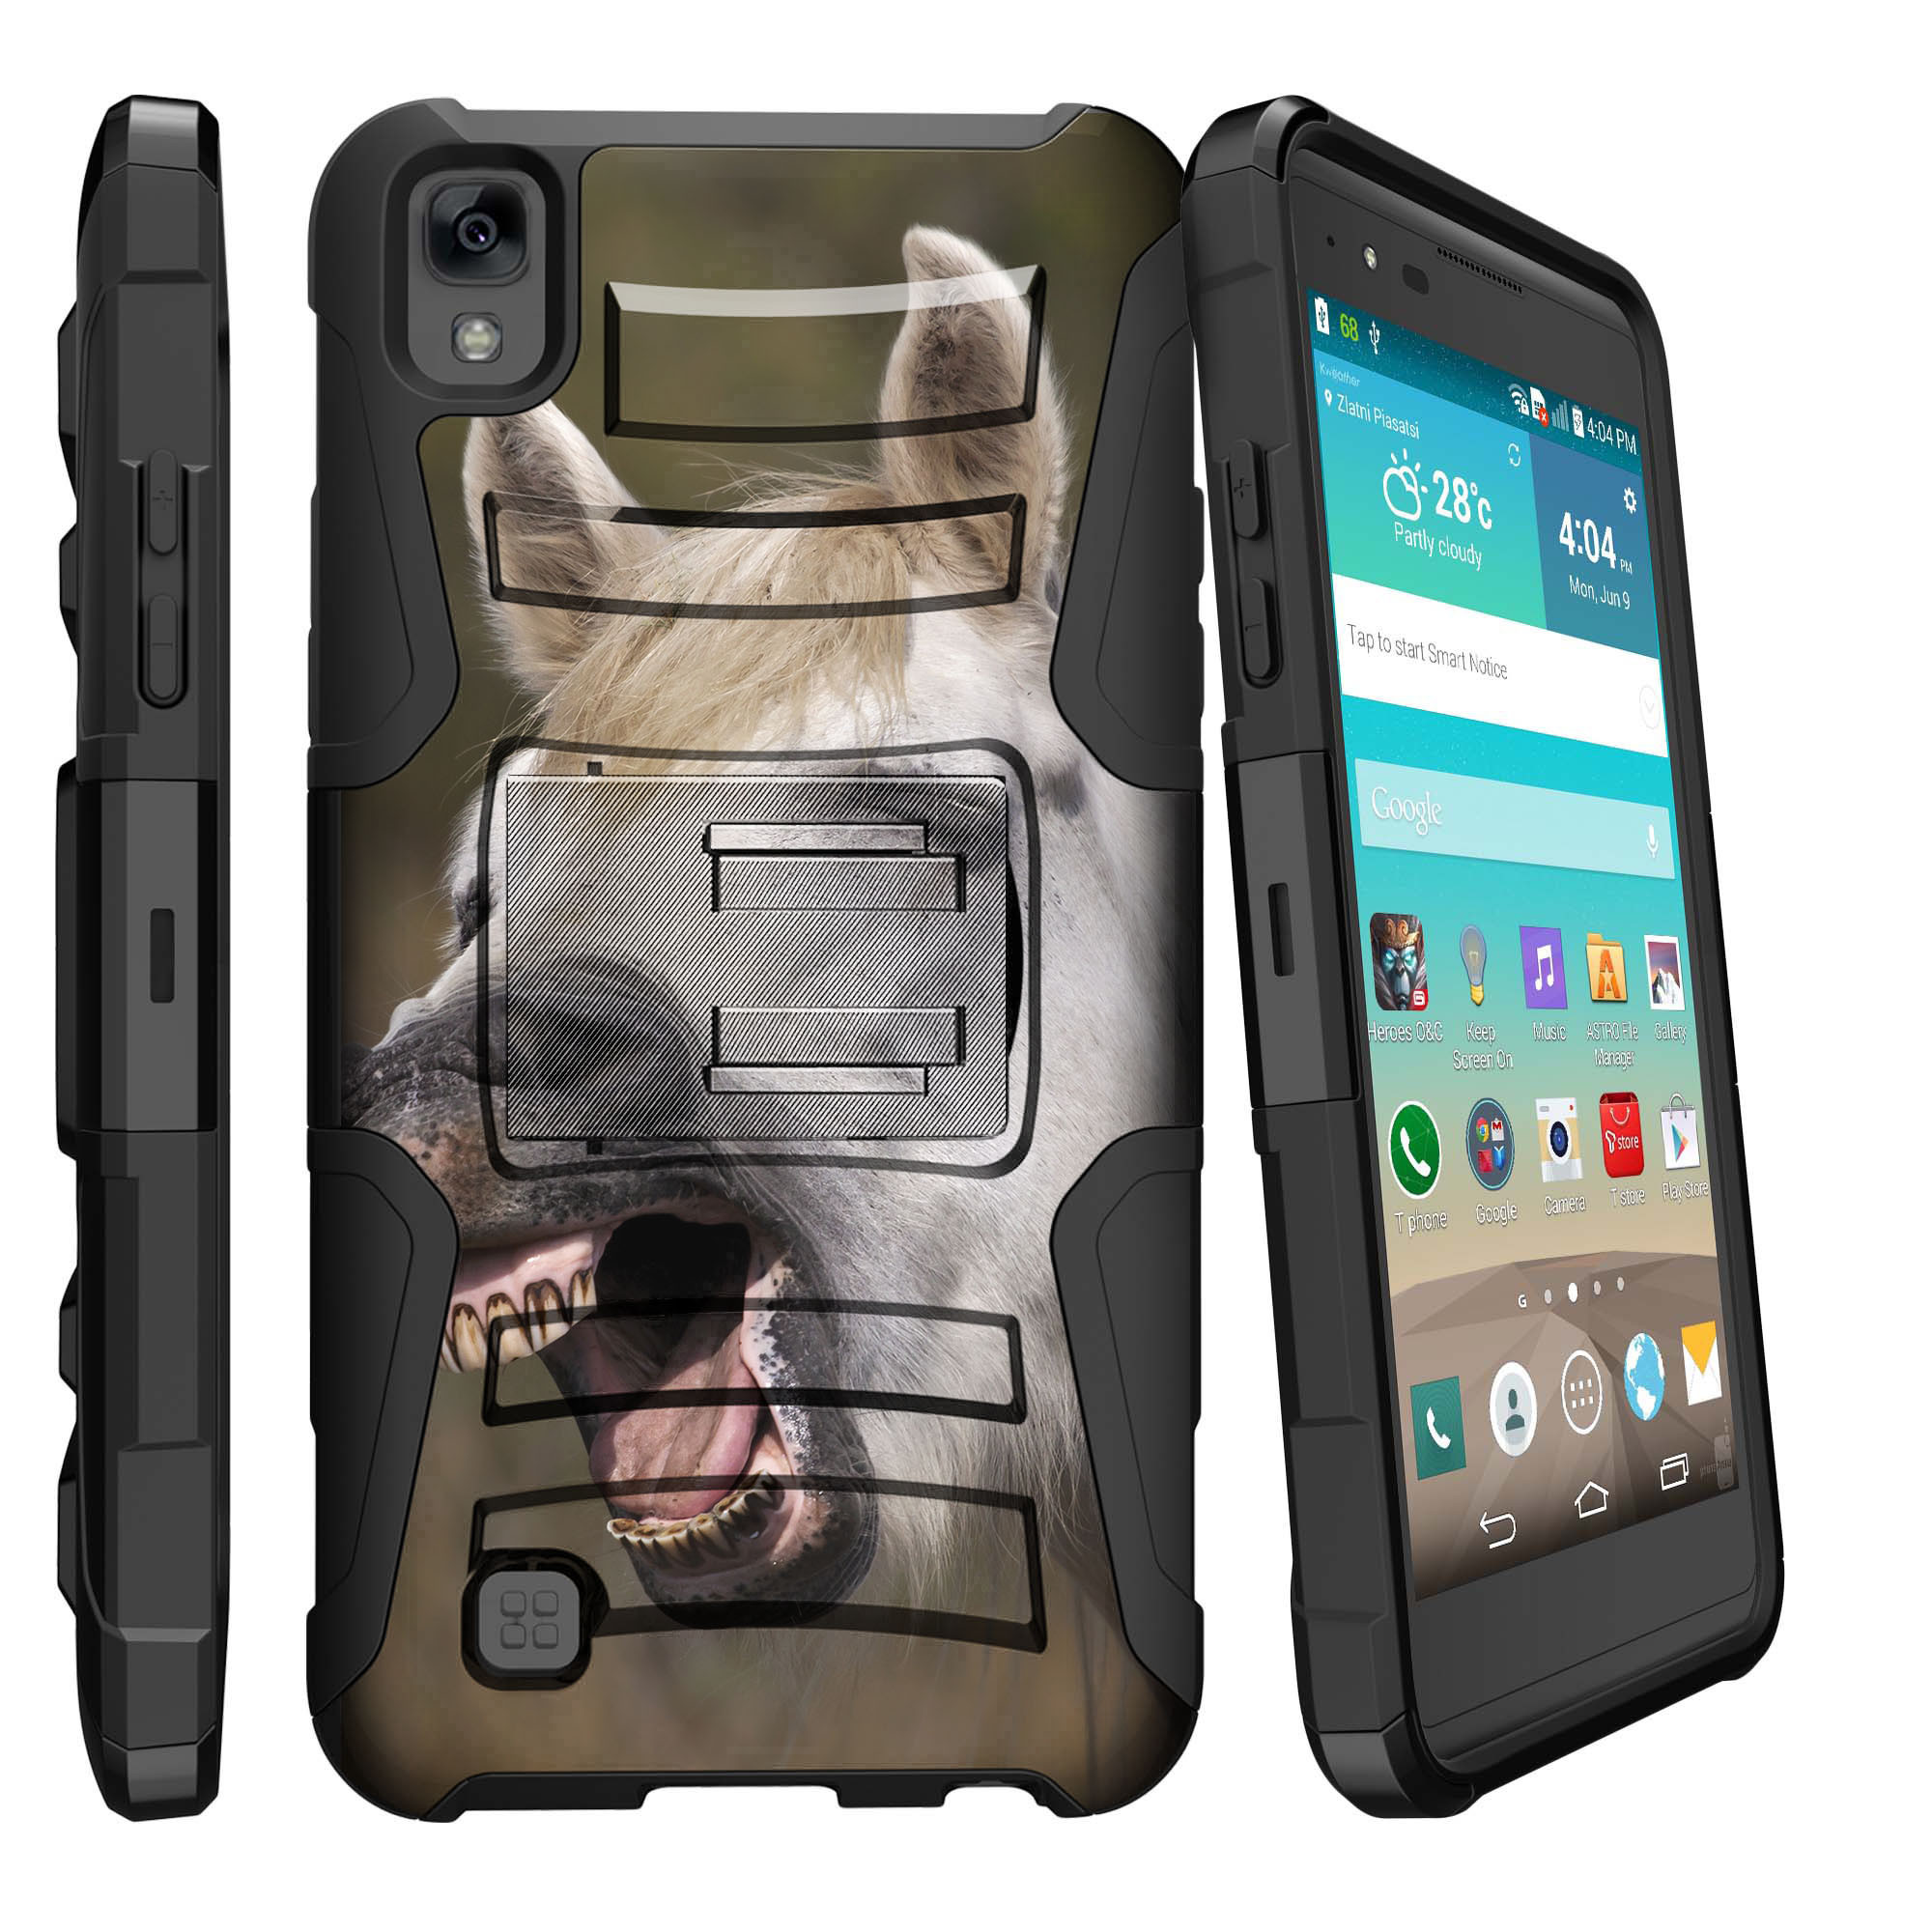 Mobile De24 Lg K6p Lg X Power Lg F740l Miniturtle Clip Armor Dual Layer Case Rugged Exterior With Built In Kickstand Holster Colorful Puppy